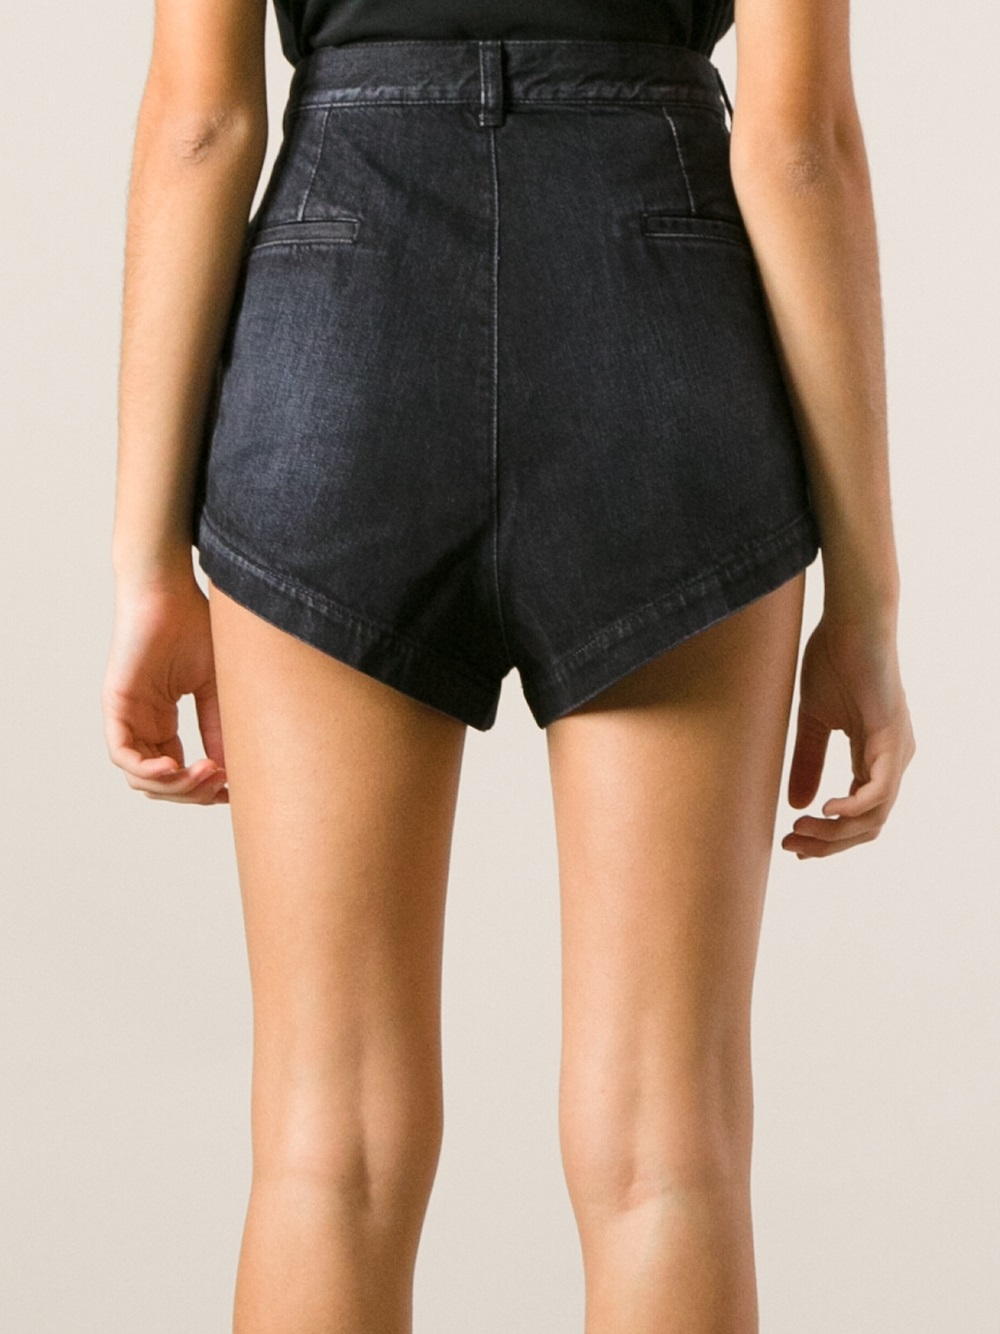 Shop Justice for cute girls' shorts in everyday styles she'll love. Find all her faves, like girls' jean shorts, high waisted shorts, crochet shorts & more. Watch her shine all season with the perfect pair of shorts for every activity.